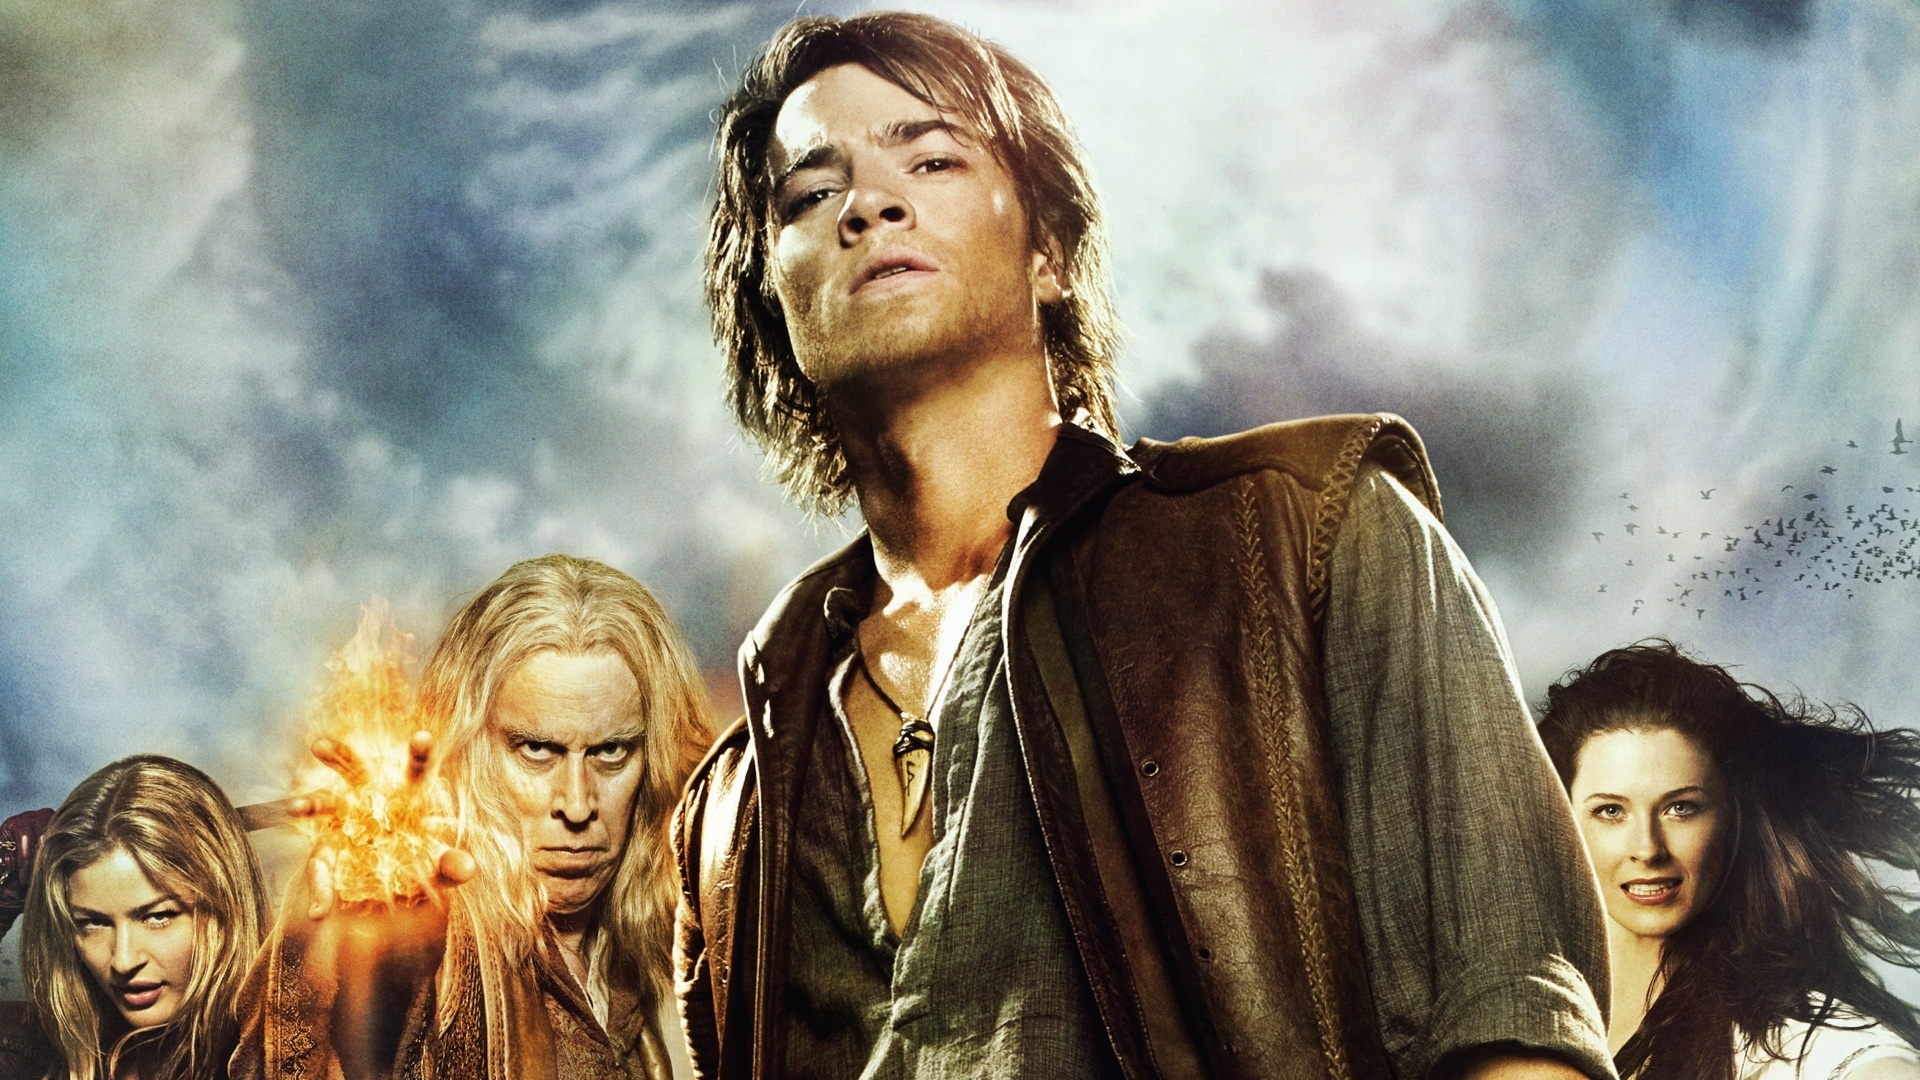 Legend of the Seeker for 1920 x 1080 HDTV 1080p resolution 1920x1080